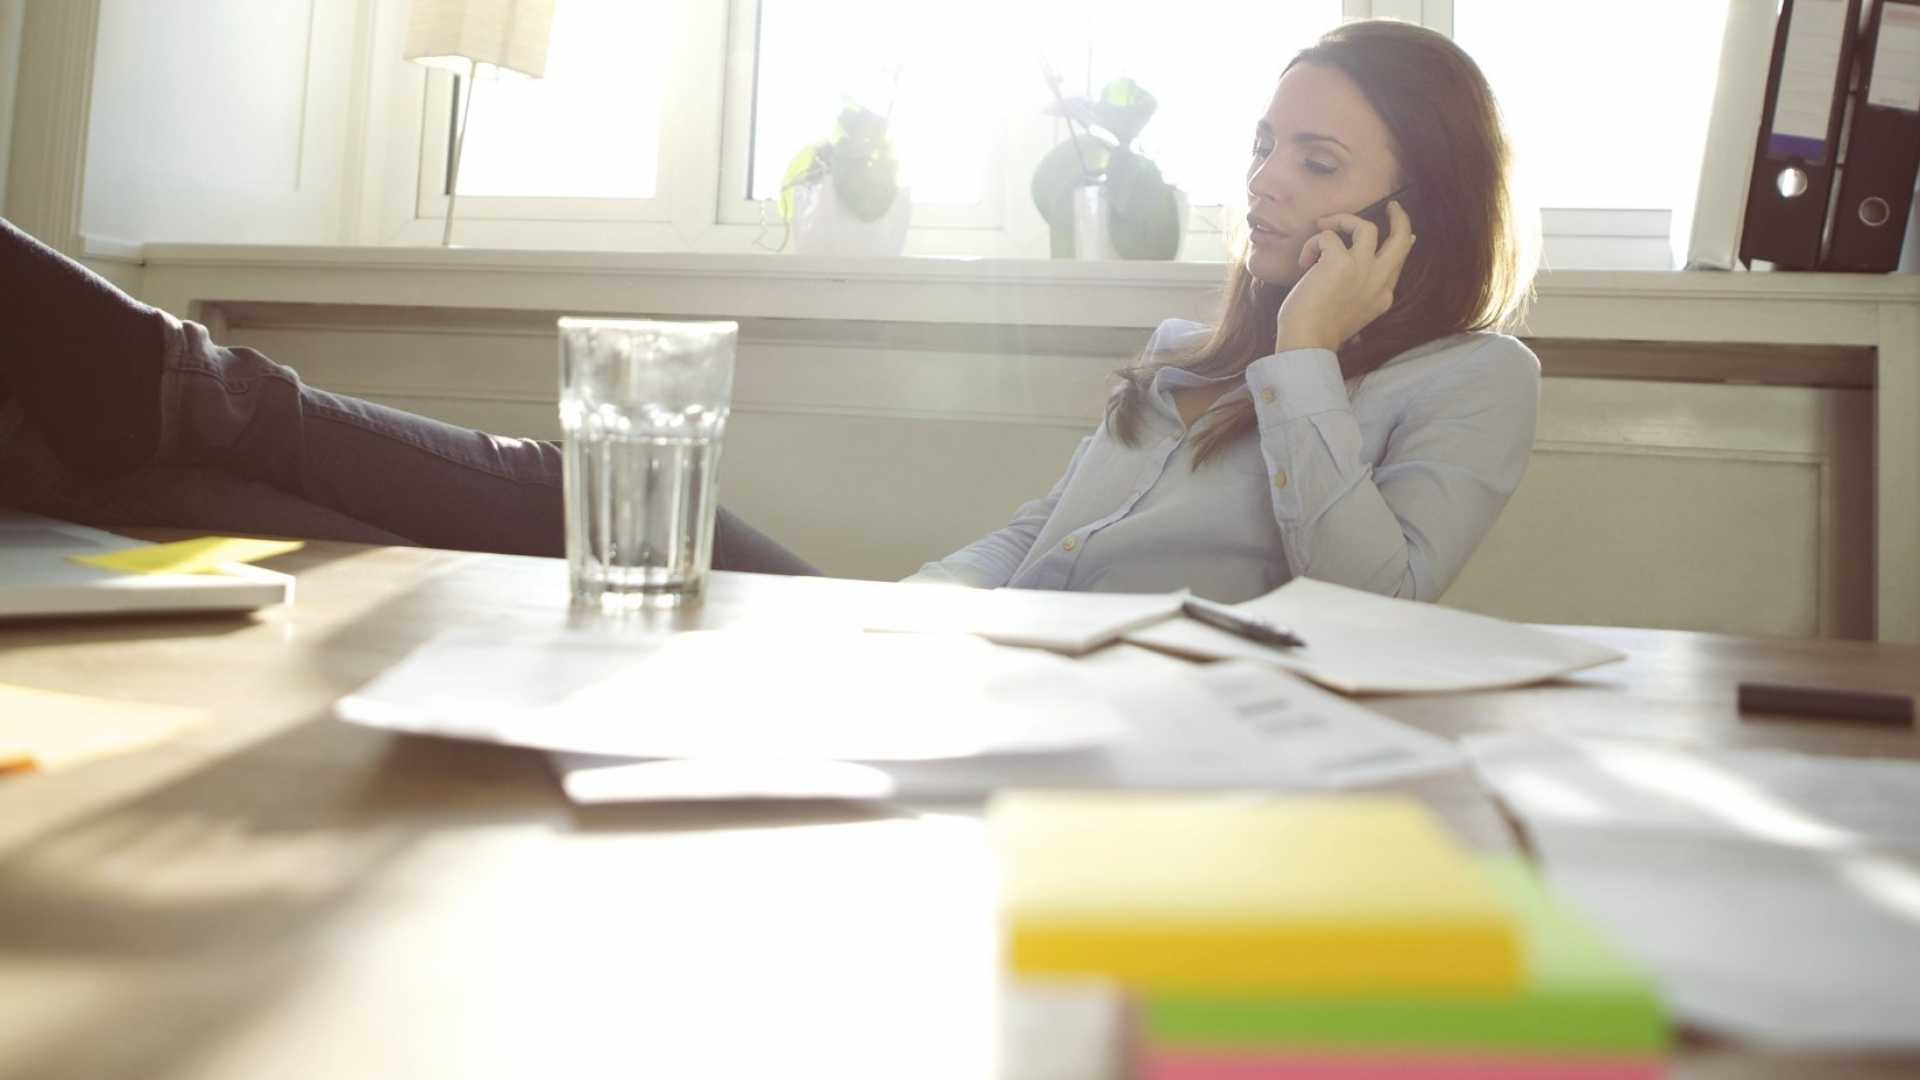 Managing Remote Workers: 8 Tech Tools That Fuel Communication